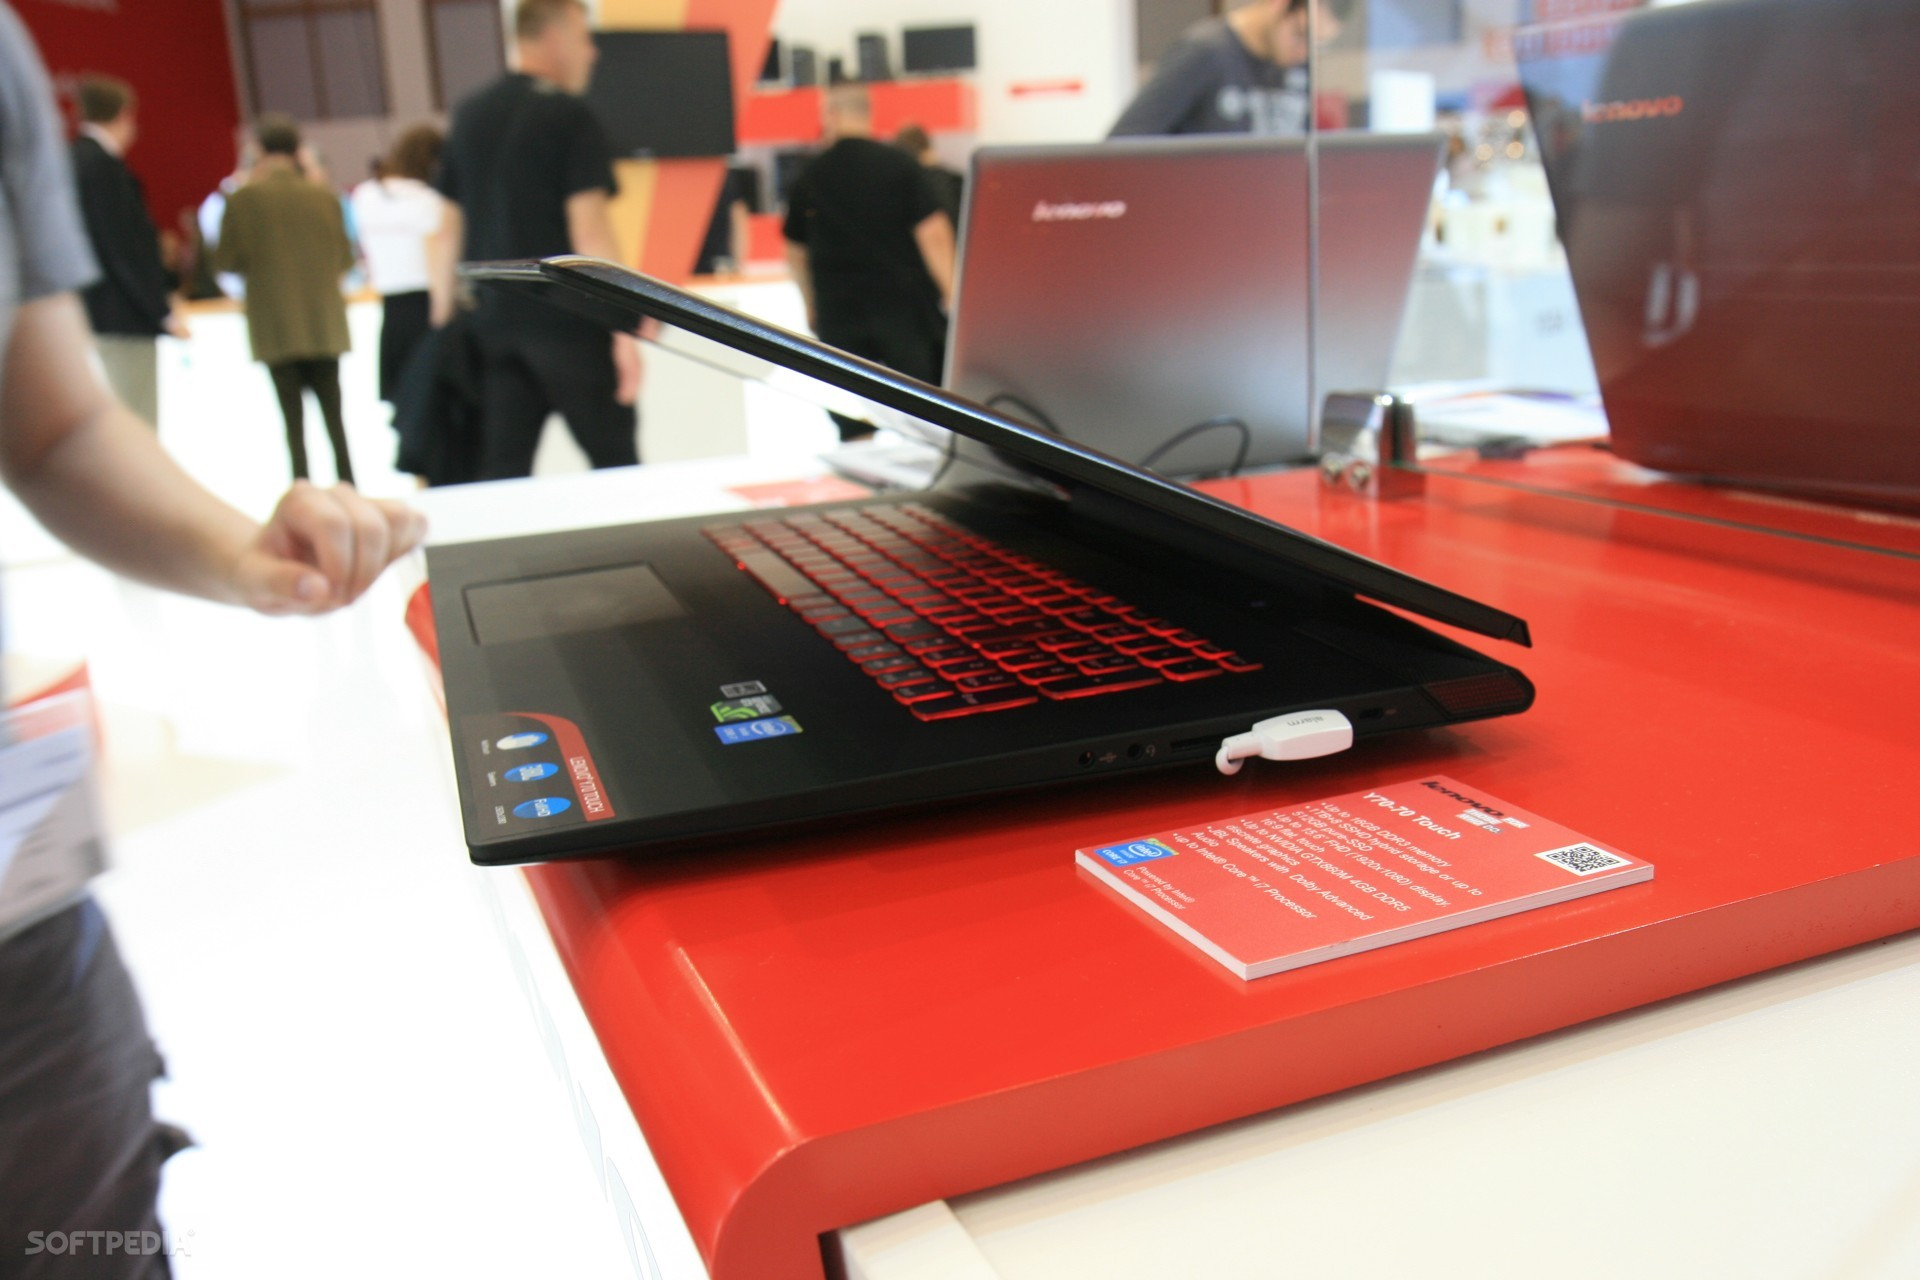 Hands On Lenovo Ideapad Y70 Gaming Laptop With Touch Screen 407ed0a5c3